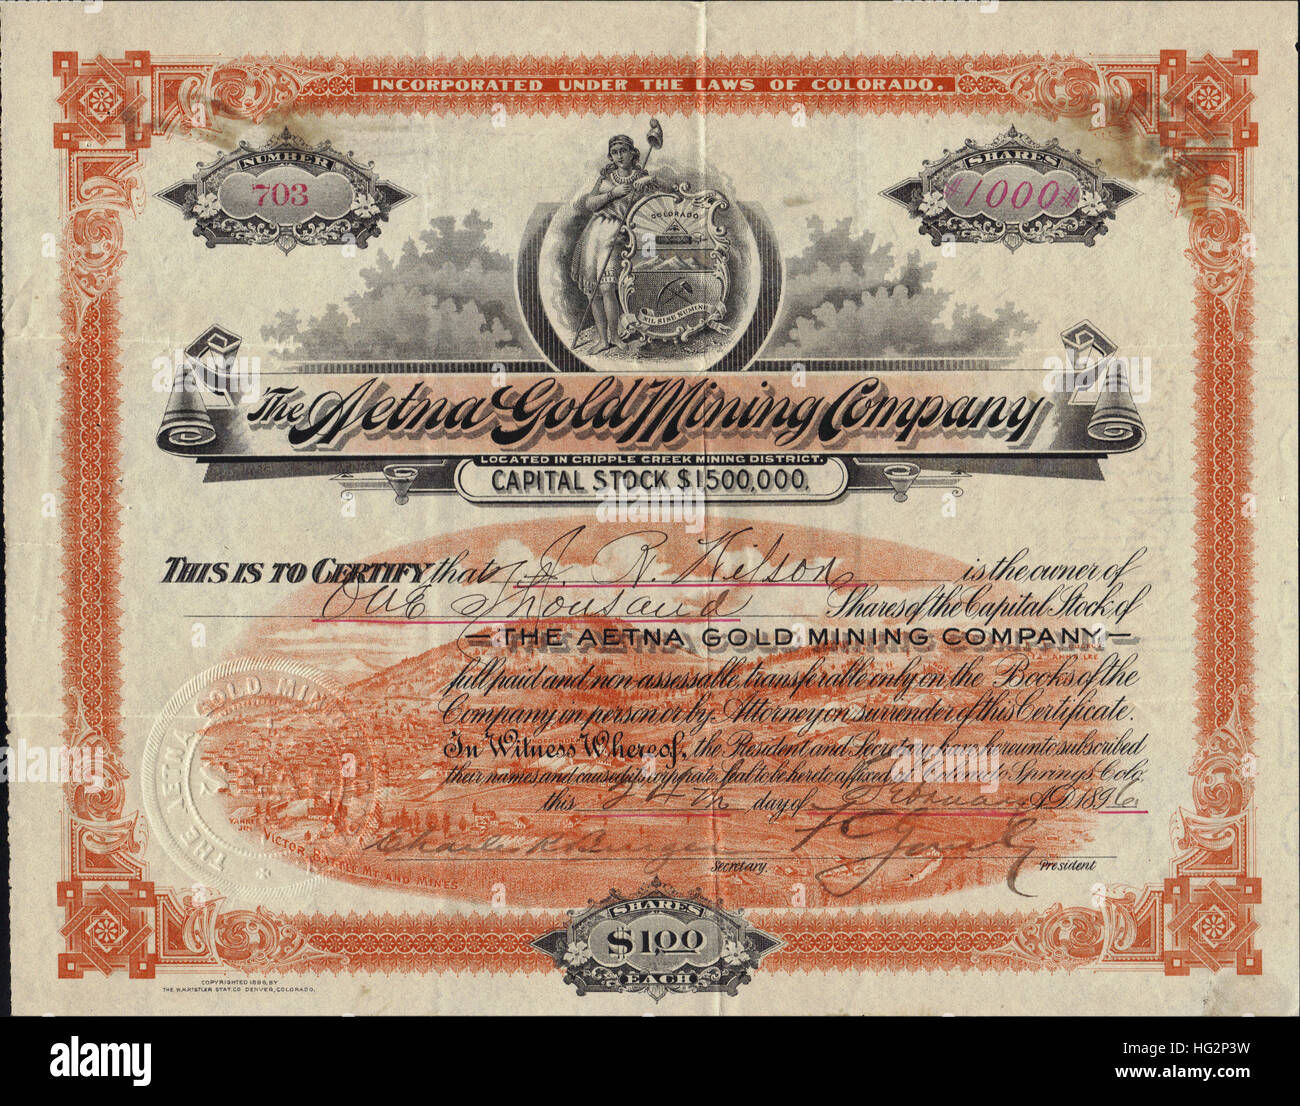 Rockwell Manufacturing Company Stock Certificate